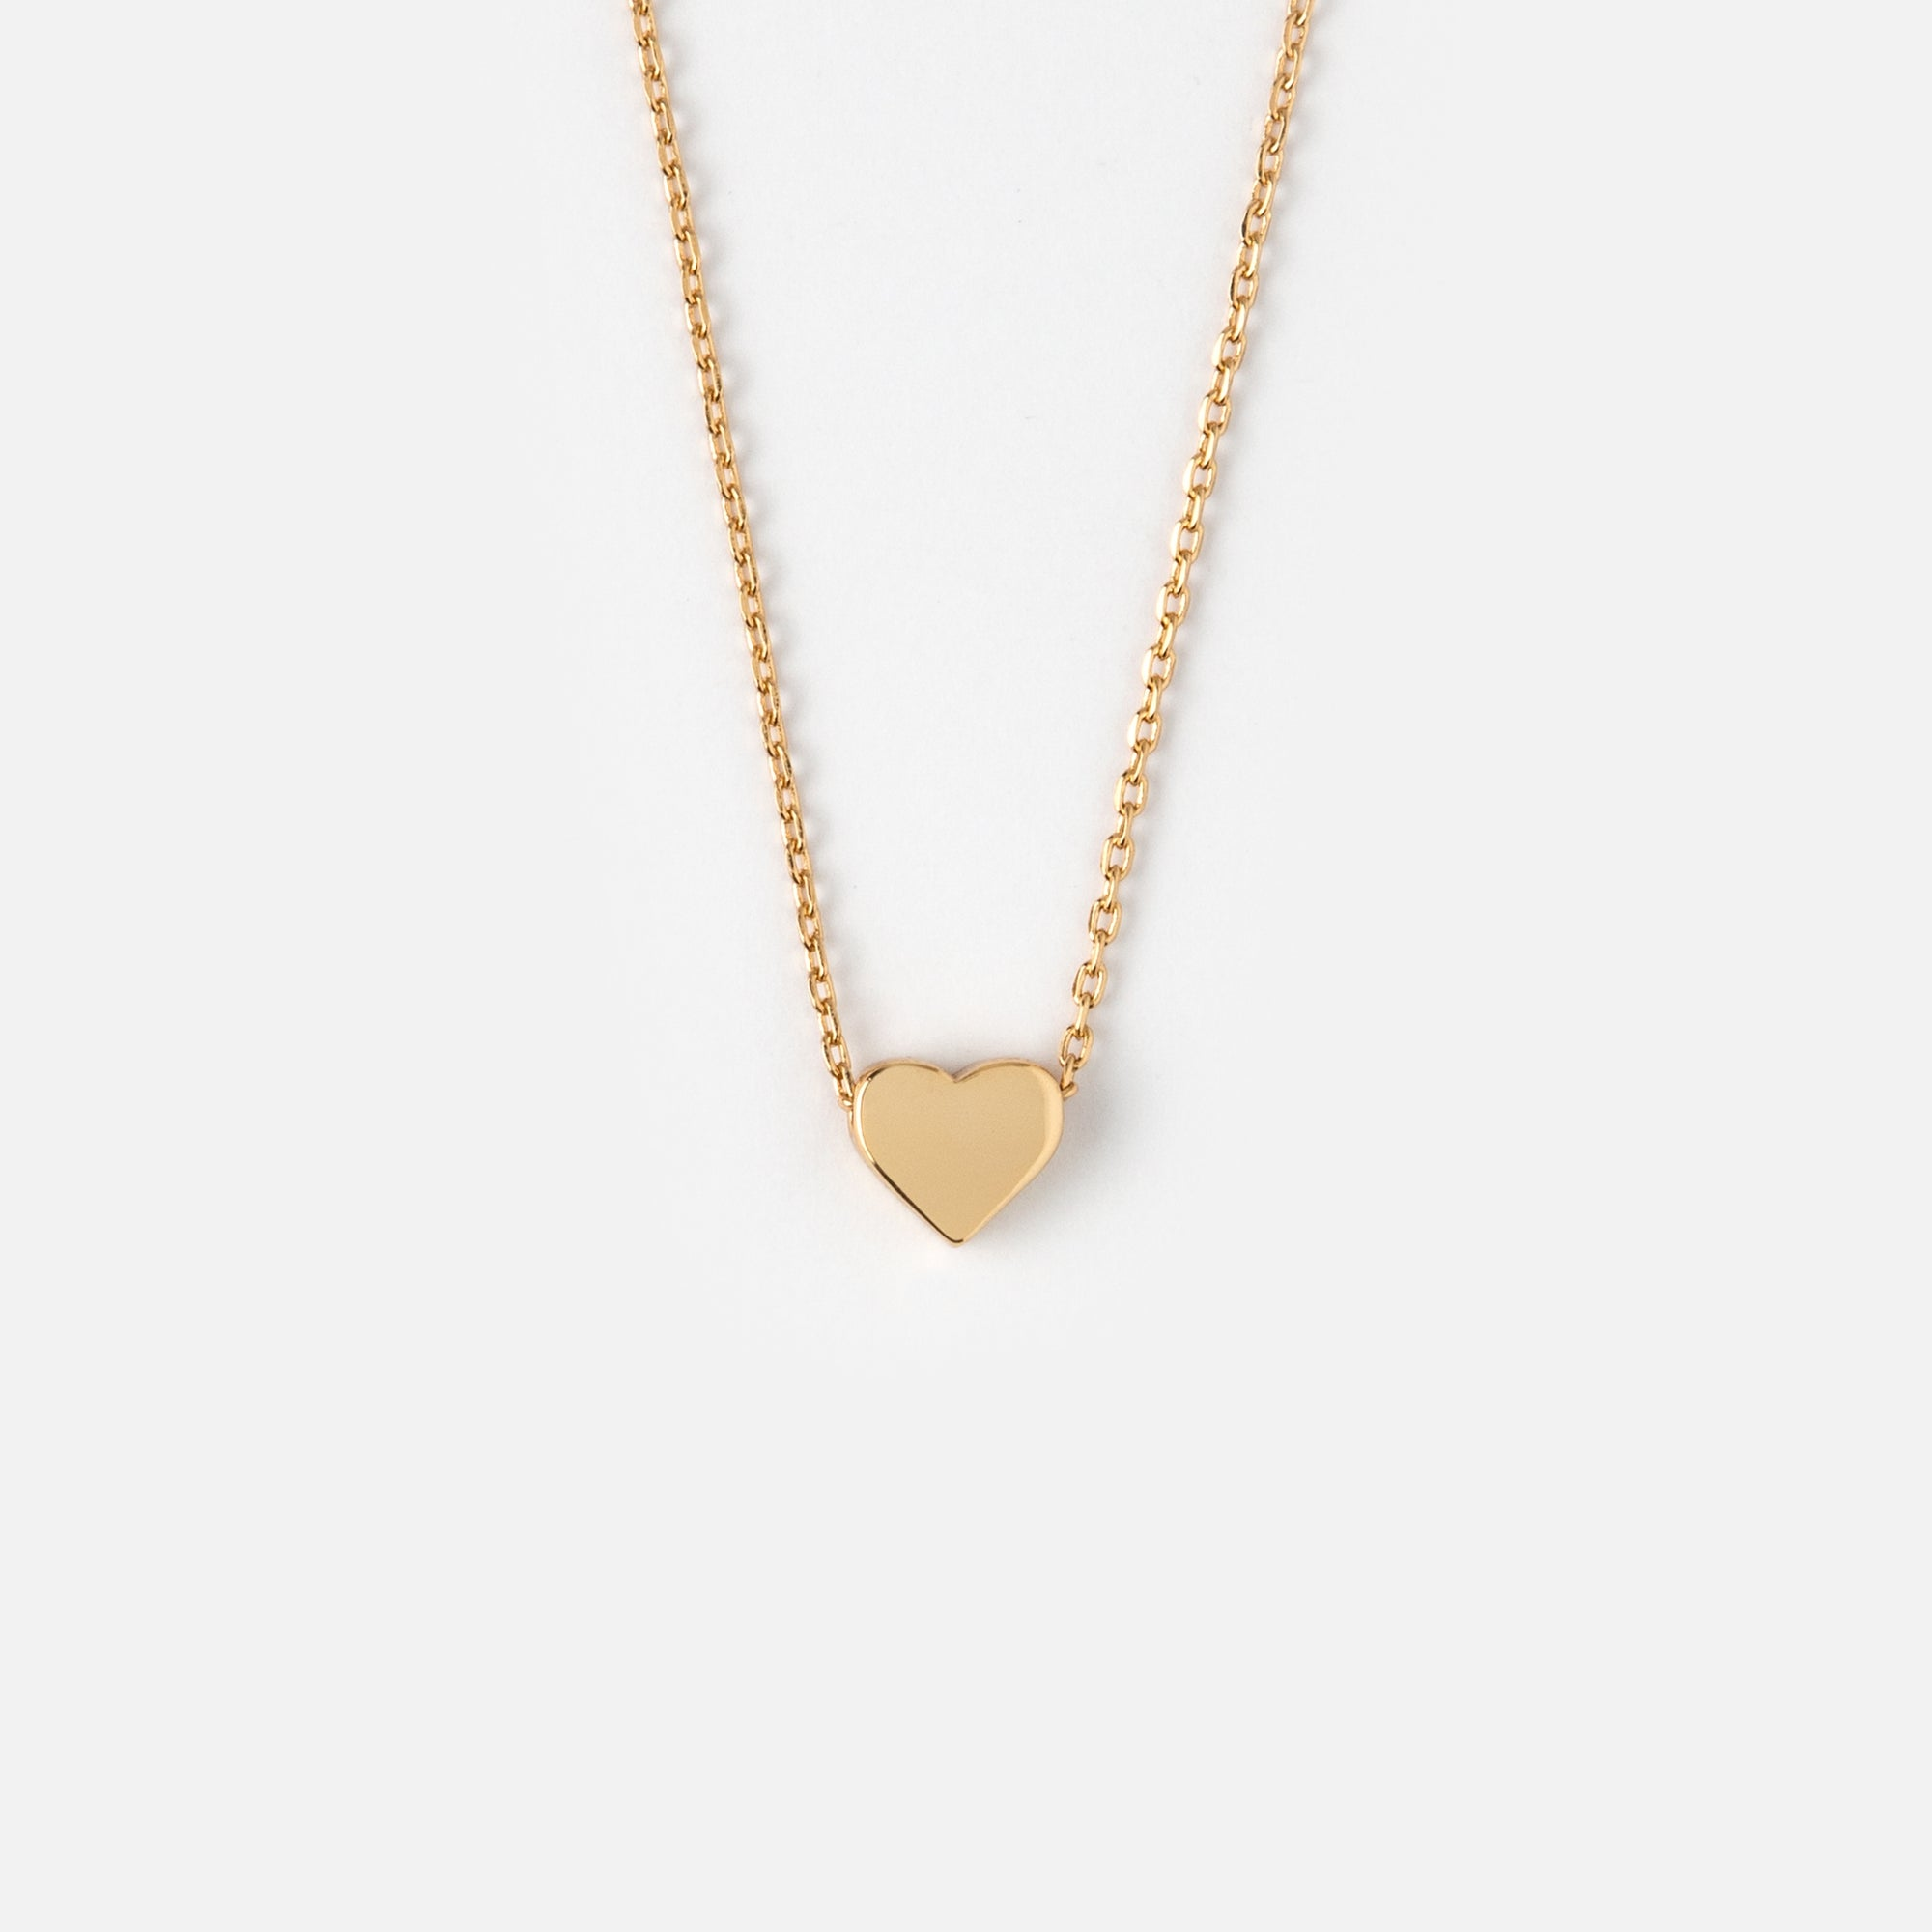 product com notonthehighstreet s heart j jewellery by double jandsjewellery original necklace